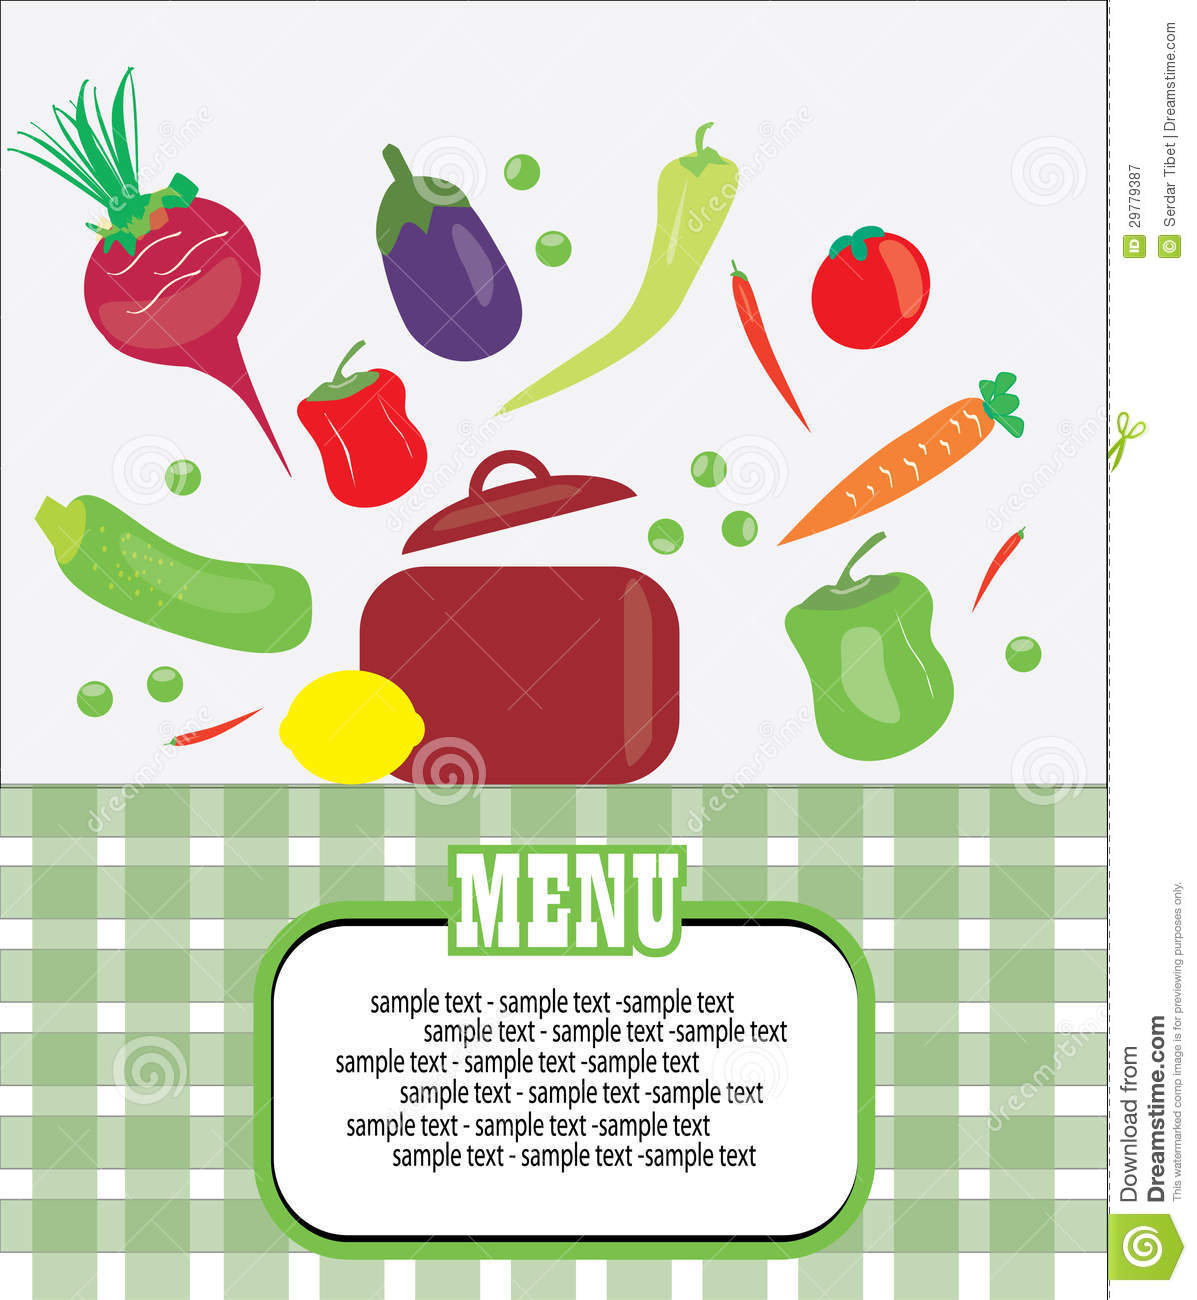 Healthy Menu Card Royalty Free Stock Photography - Image: 29779387